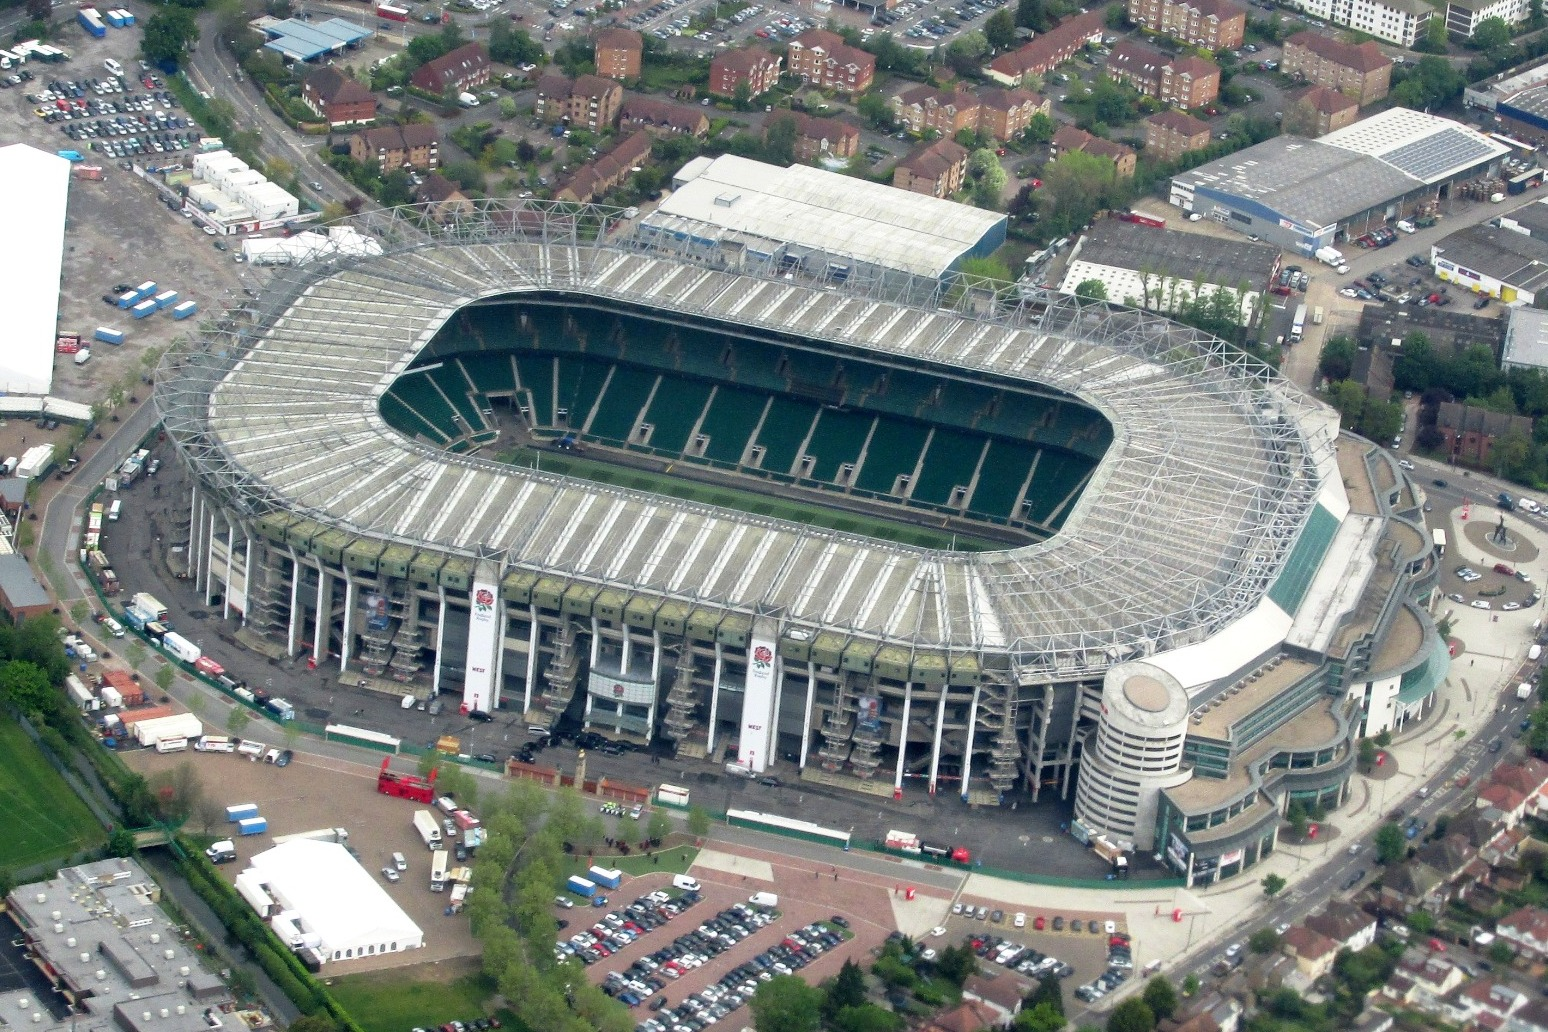 Twickenham becomes a one day vaccination site